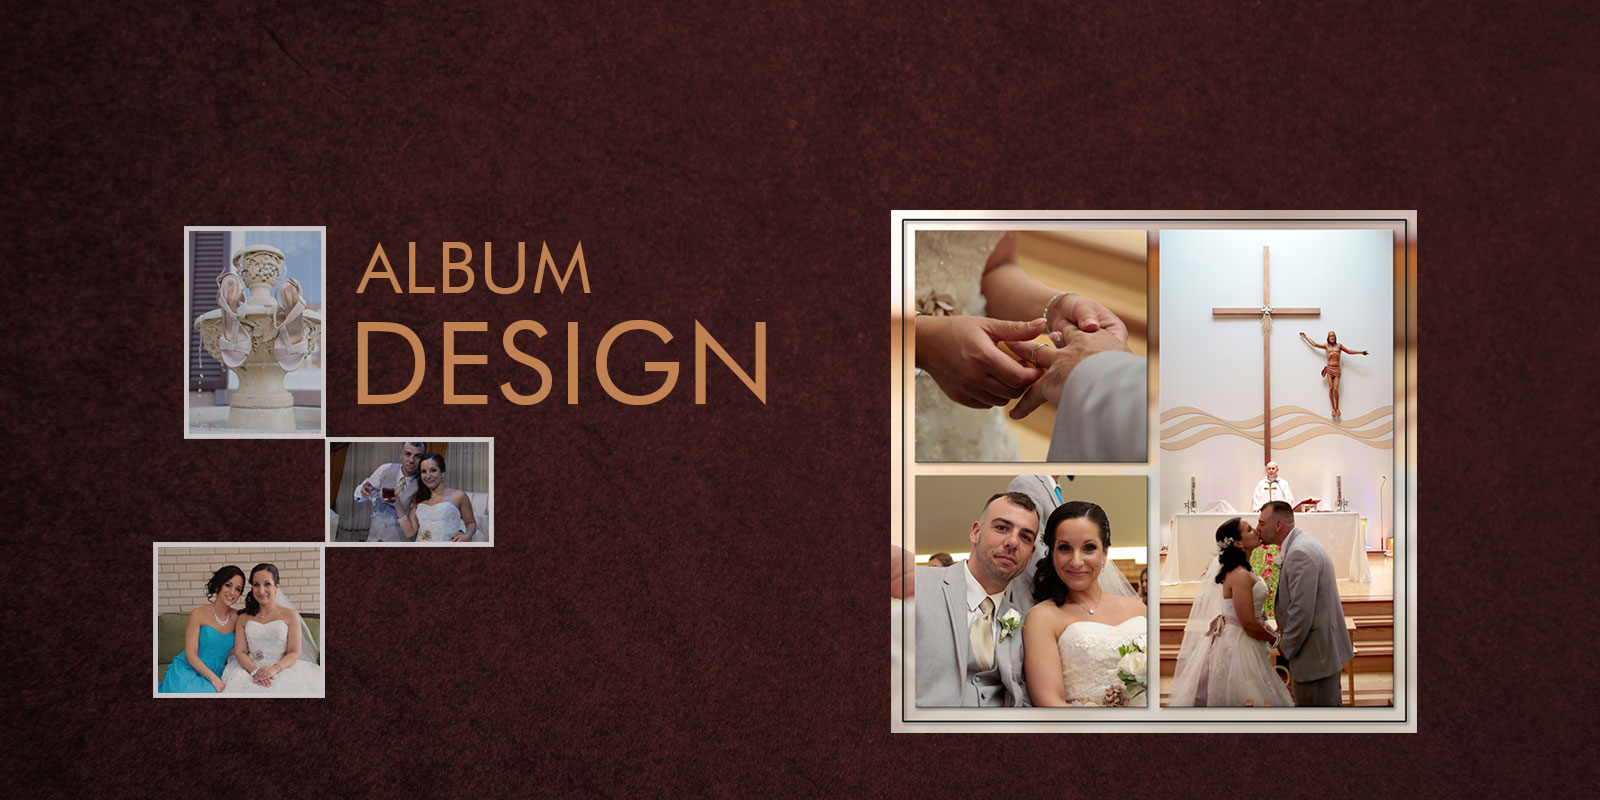 How to Get the Most Out of Your Wedding Album Design?